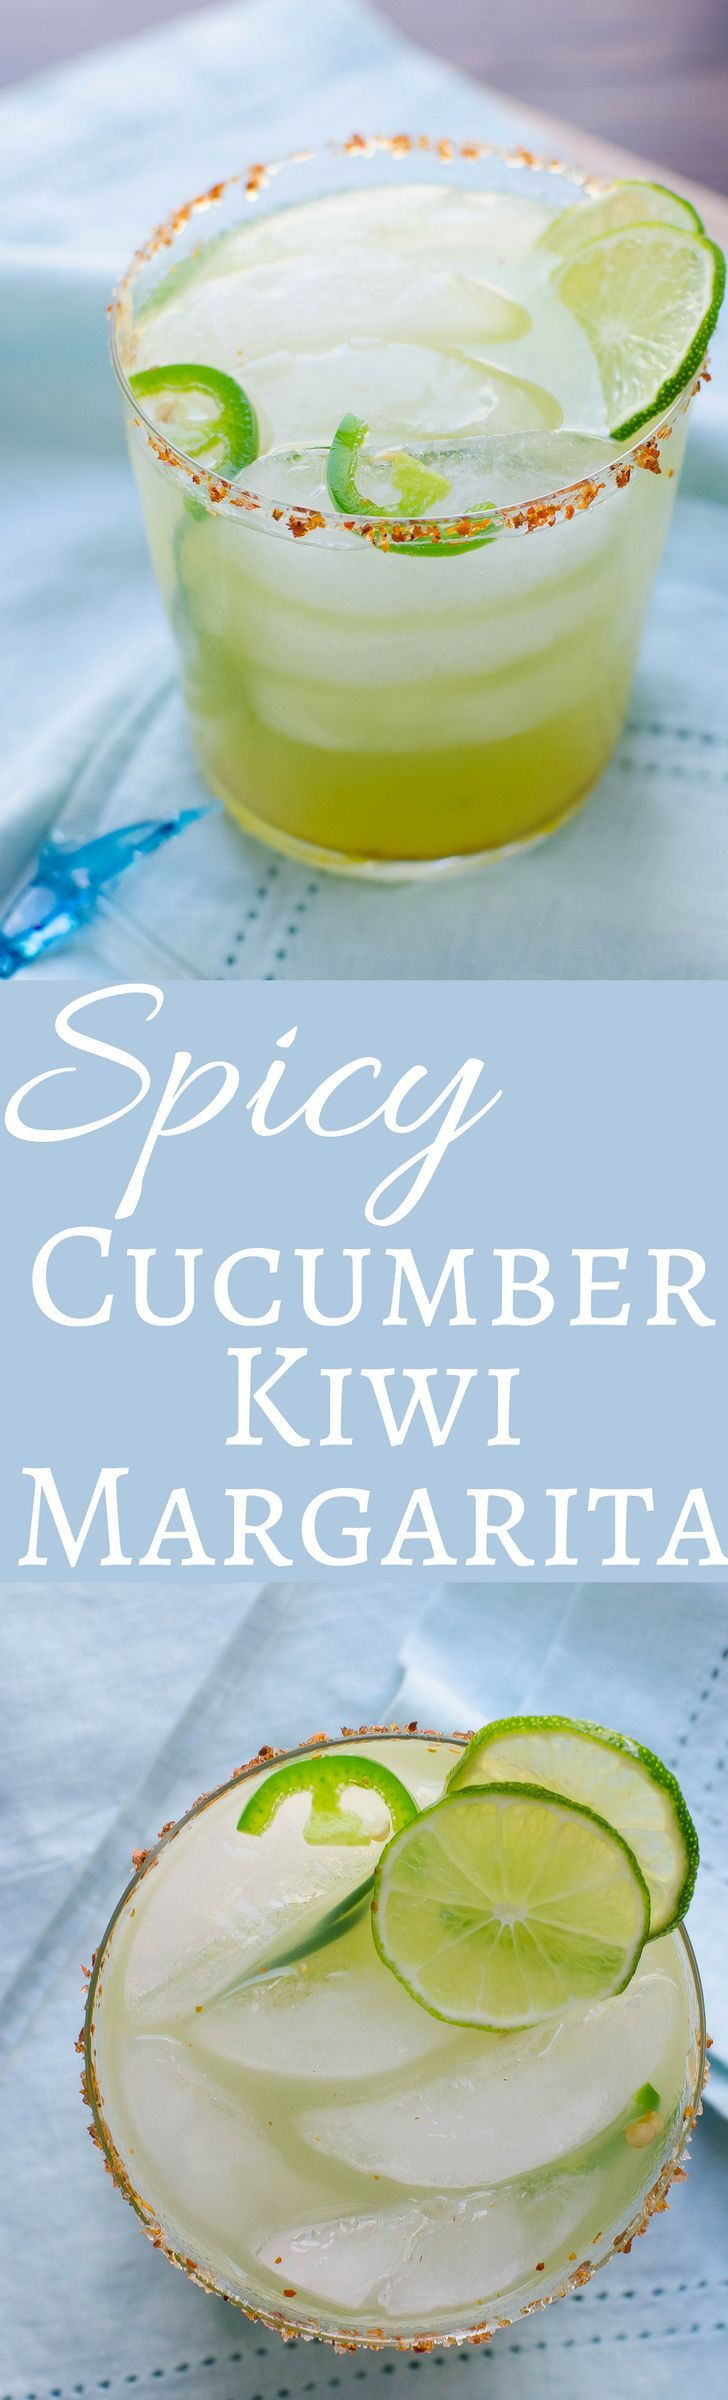 Love margaritas? This easy recipe uses cucumbers, kiwis and jalapenos for a deliciously different cocktail!